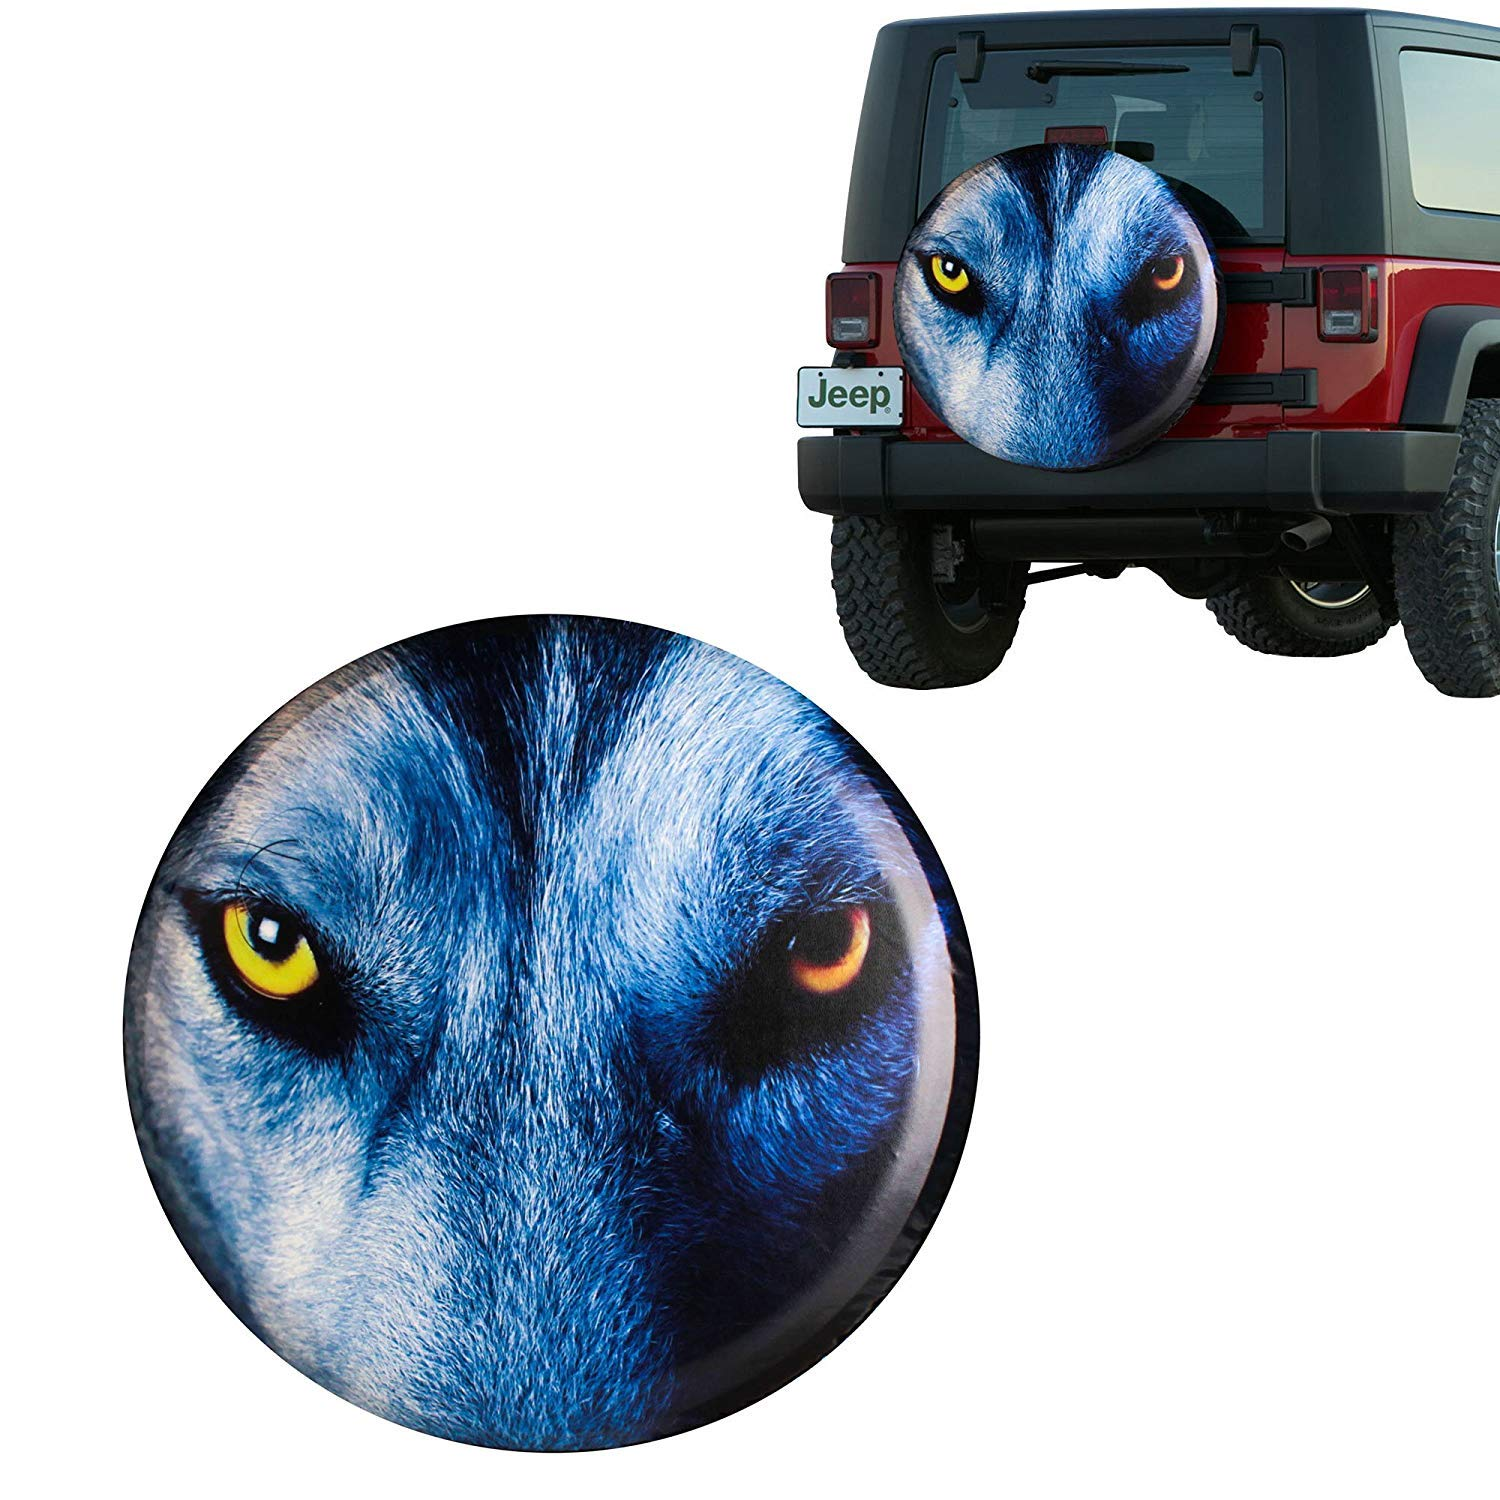 Car Tire Spare , Blue Wolf Gaze Eyes Spare Tire Wheel Cover Car Truck Suv Camper Fits Jeep Wrangler Crv Fj Rav4 H2 H3 Land Rover Discovery Ecosport Outlander Grand Vitara R15 M (diameter 28 30 ), M by Eletina mlfl Eletina difts